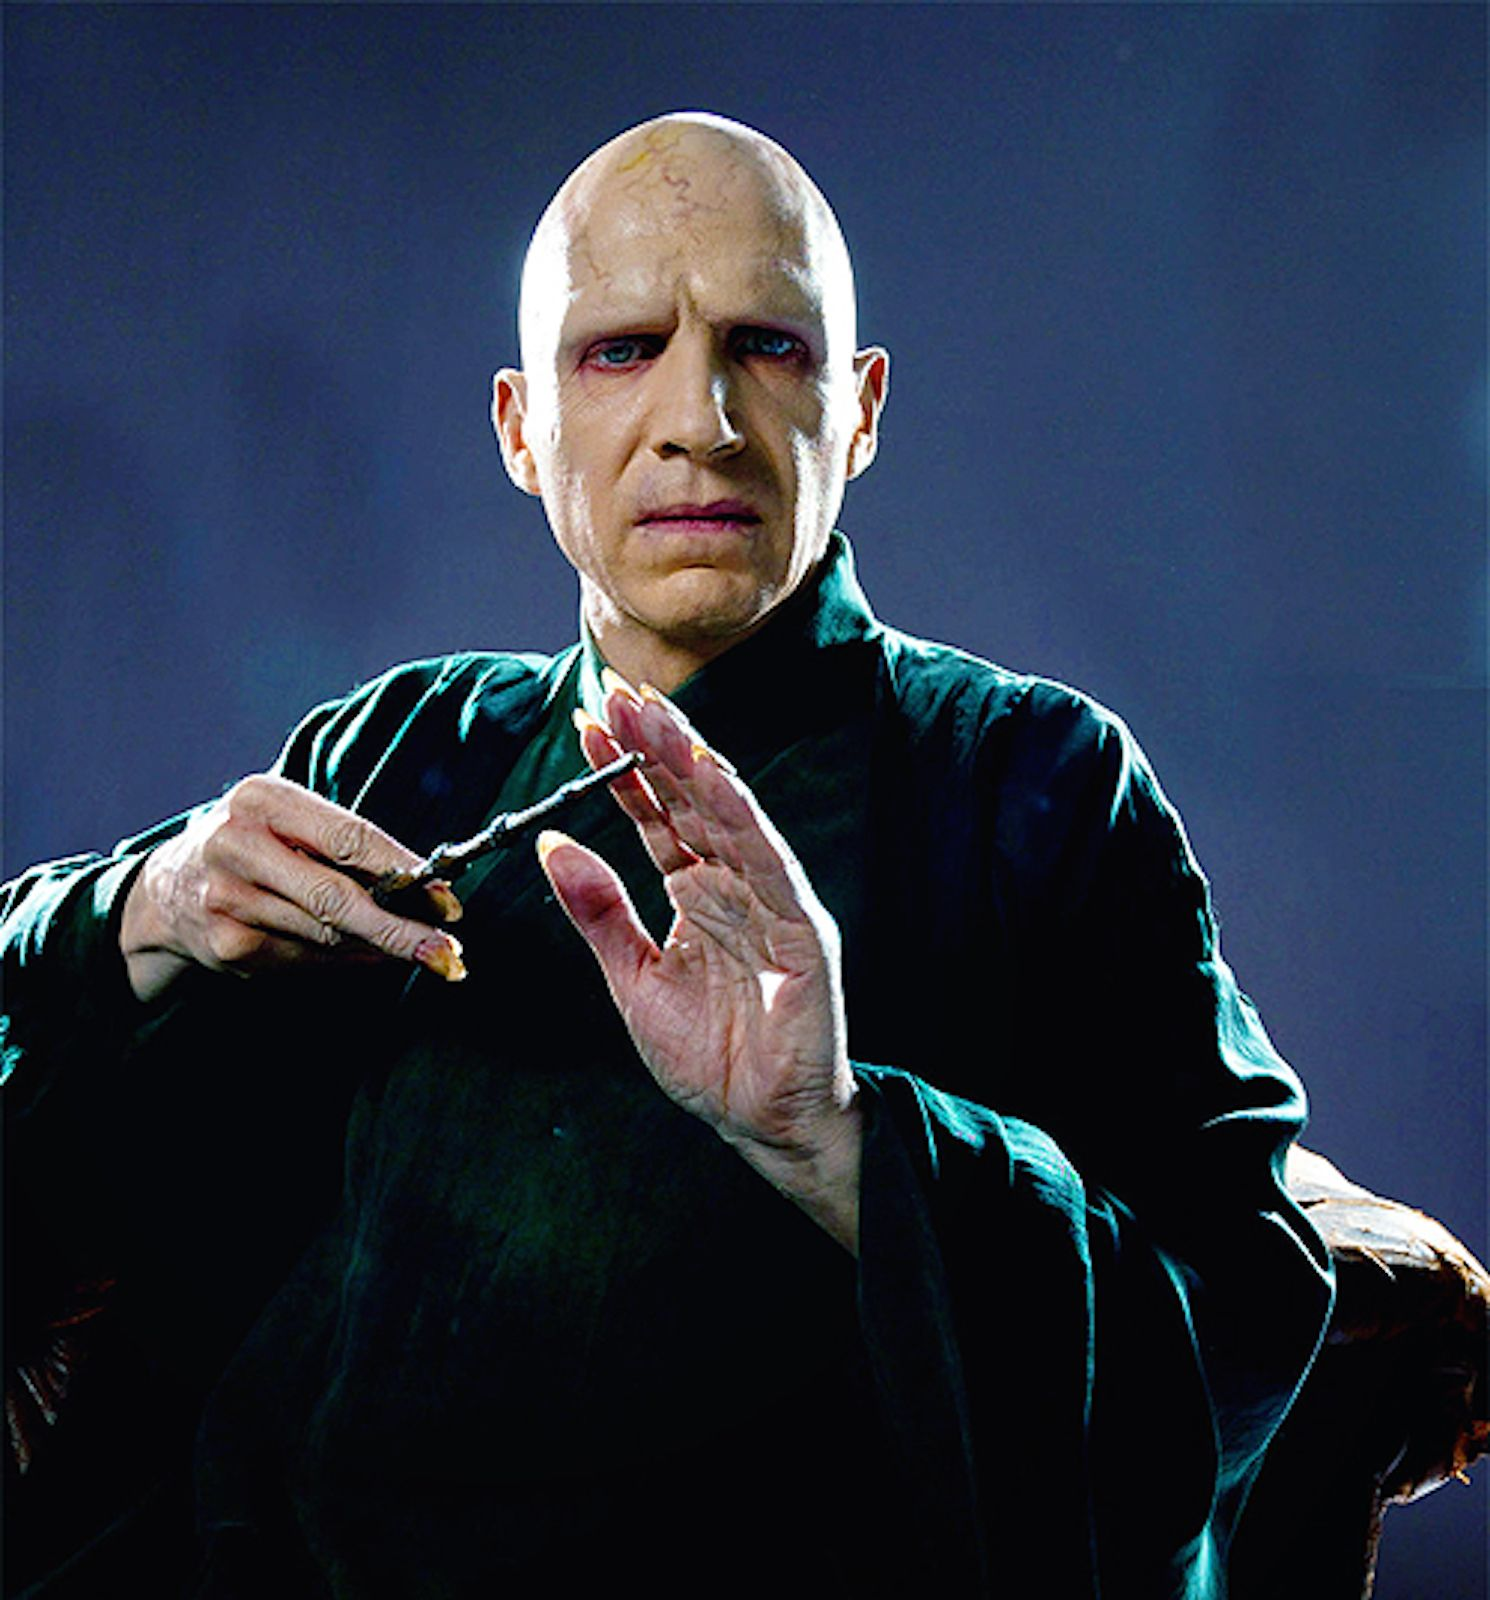 Photoshoots Of Ralph Fiennes As Voldemort Prior To Special Effects From The Order Of The Phoenix And The Deathly Hallows Harry Potter Voldemort Harry Potter Timeline Ralph Fiennes